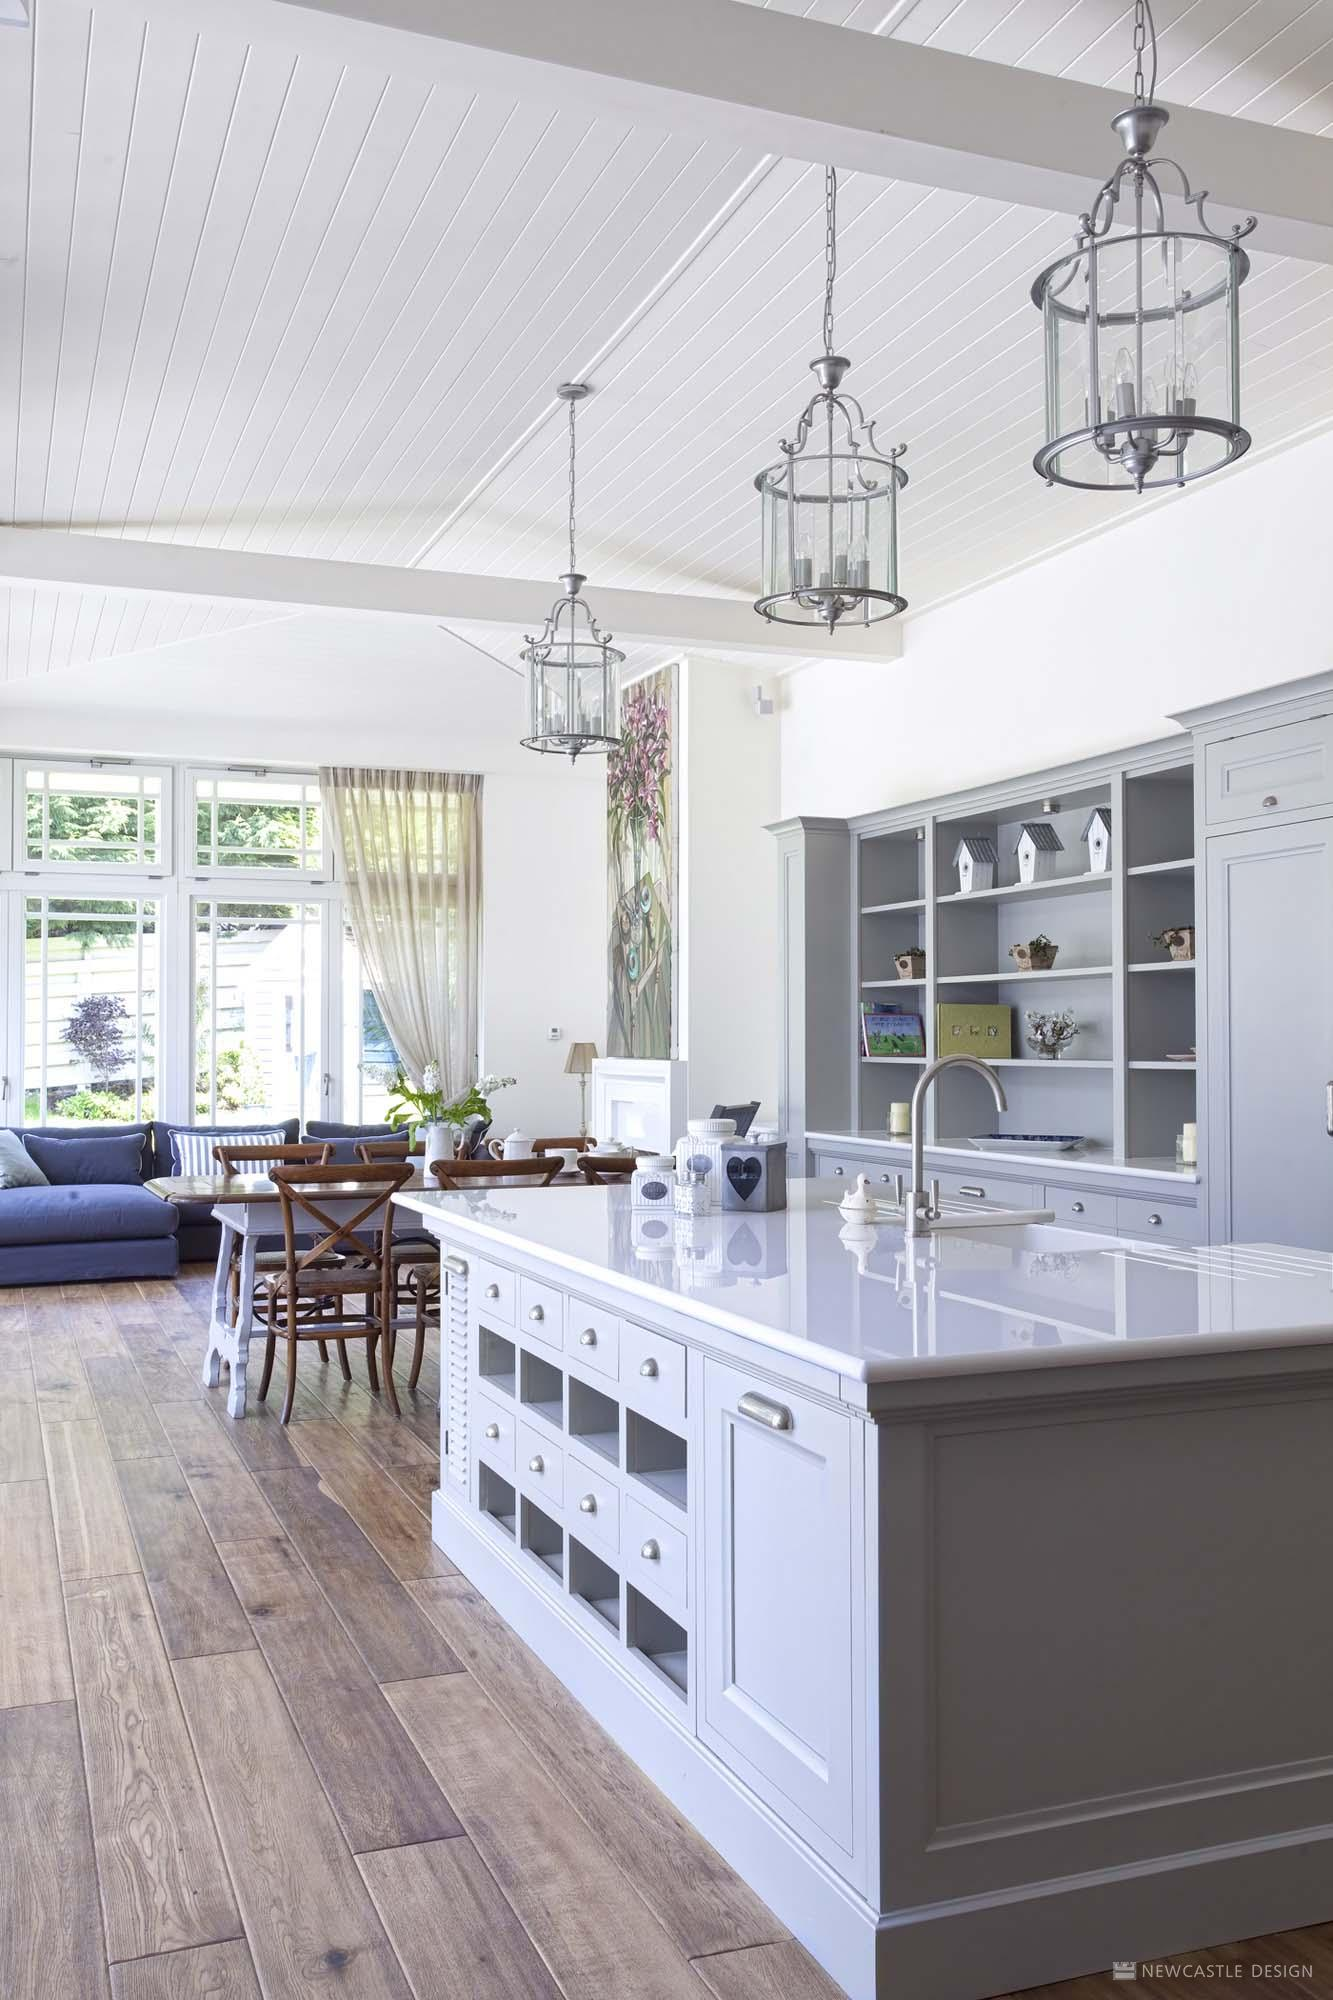 Hamptons Kitchen Design. Serenity Kitchen Elegant Design  Traditional Newcastle Interiors